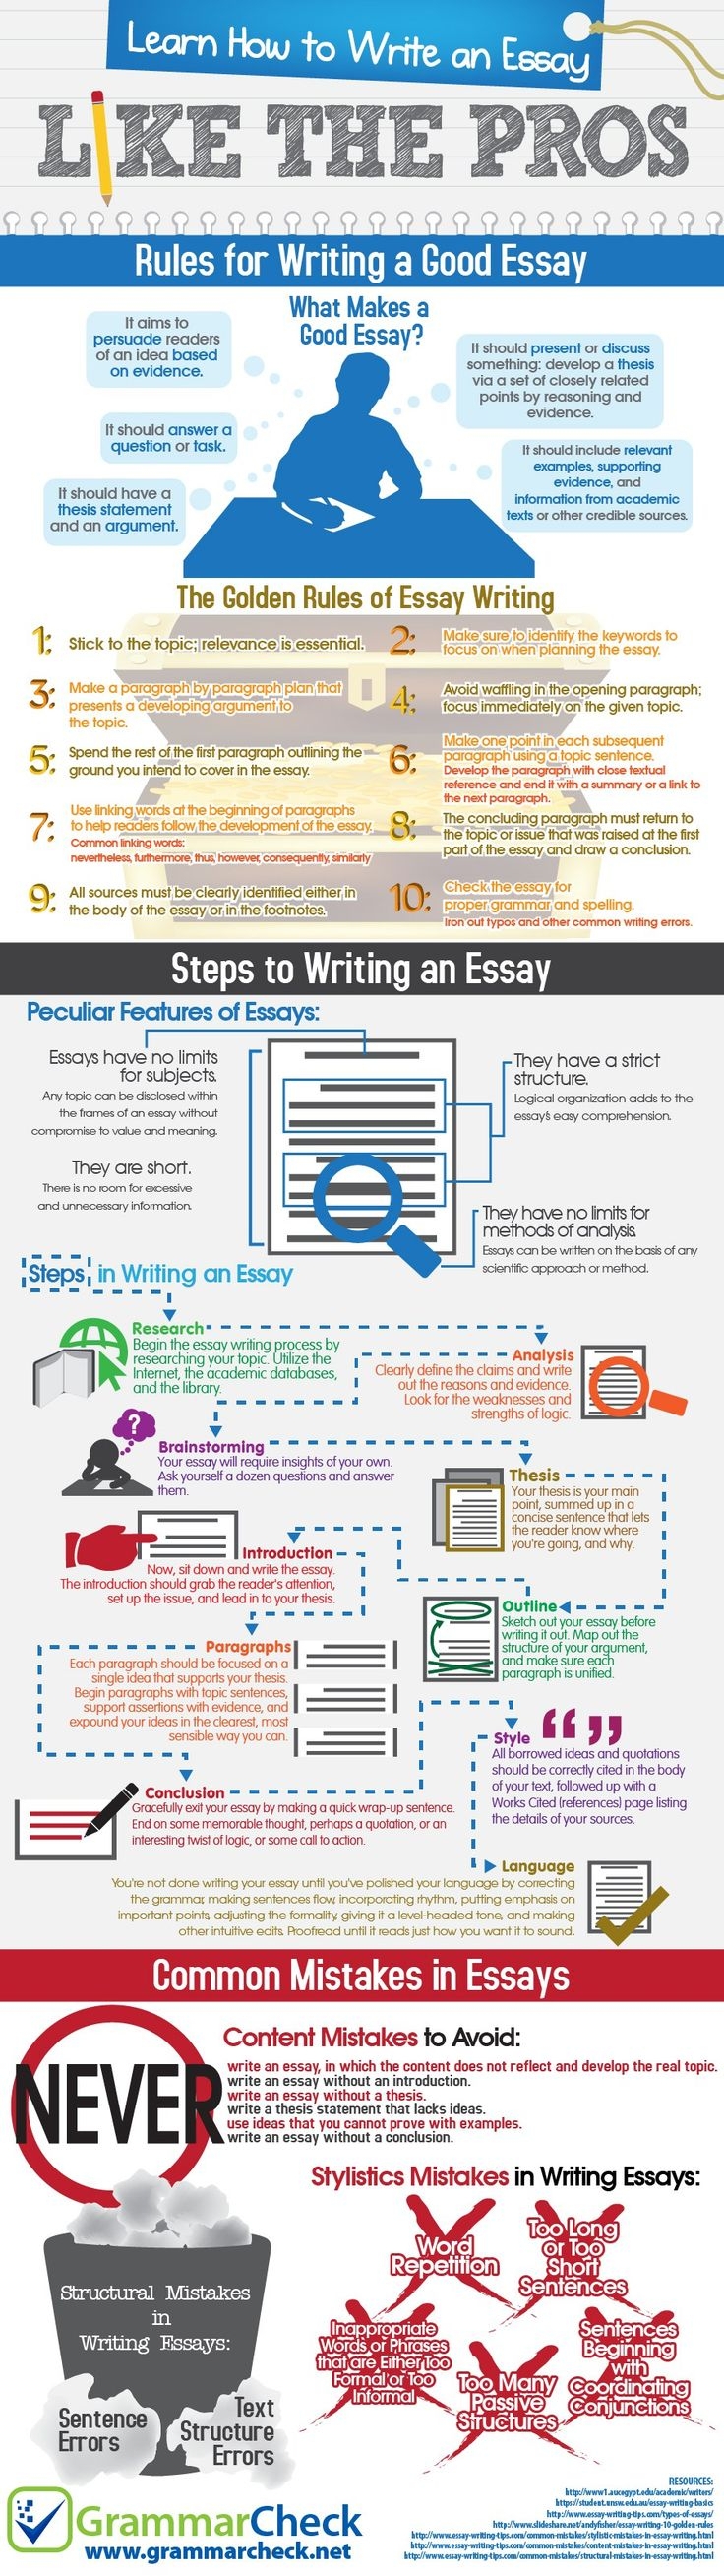 do my college essay casinodelille com also they can essays on writing by writers offer you any information about the company and the ordering process you can place the order right here